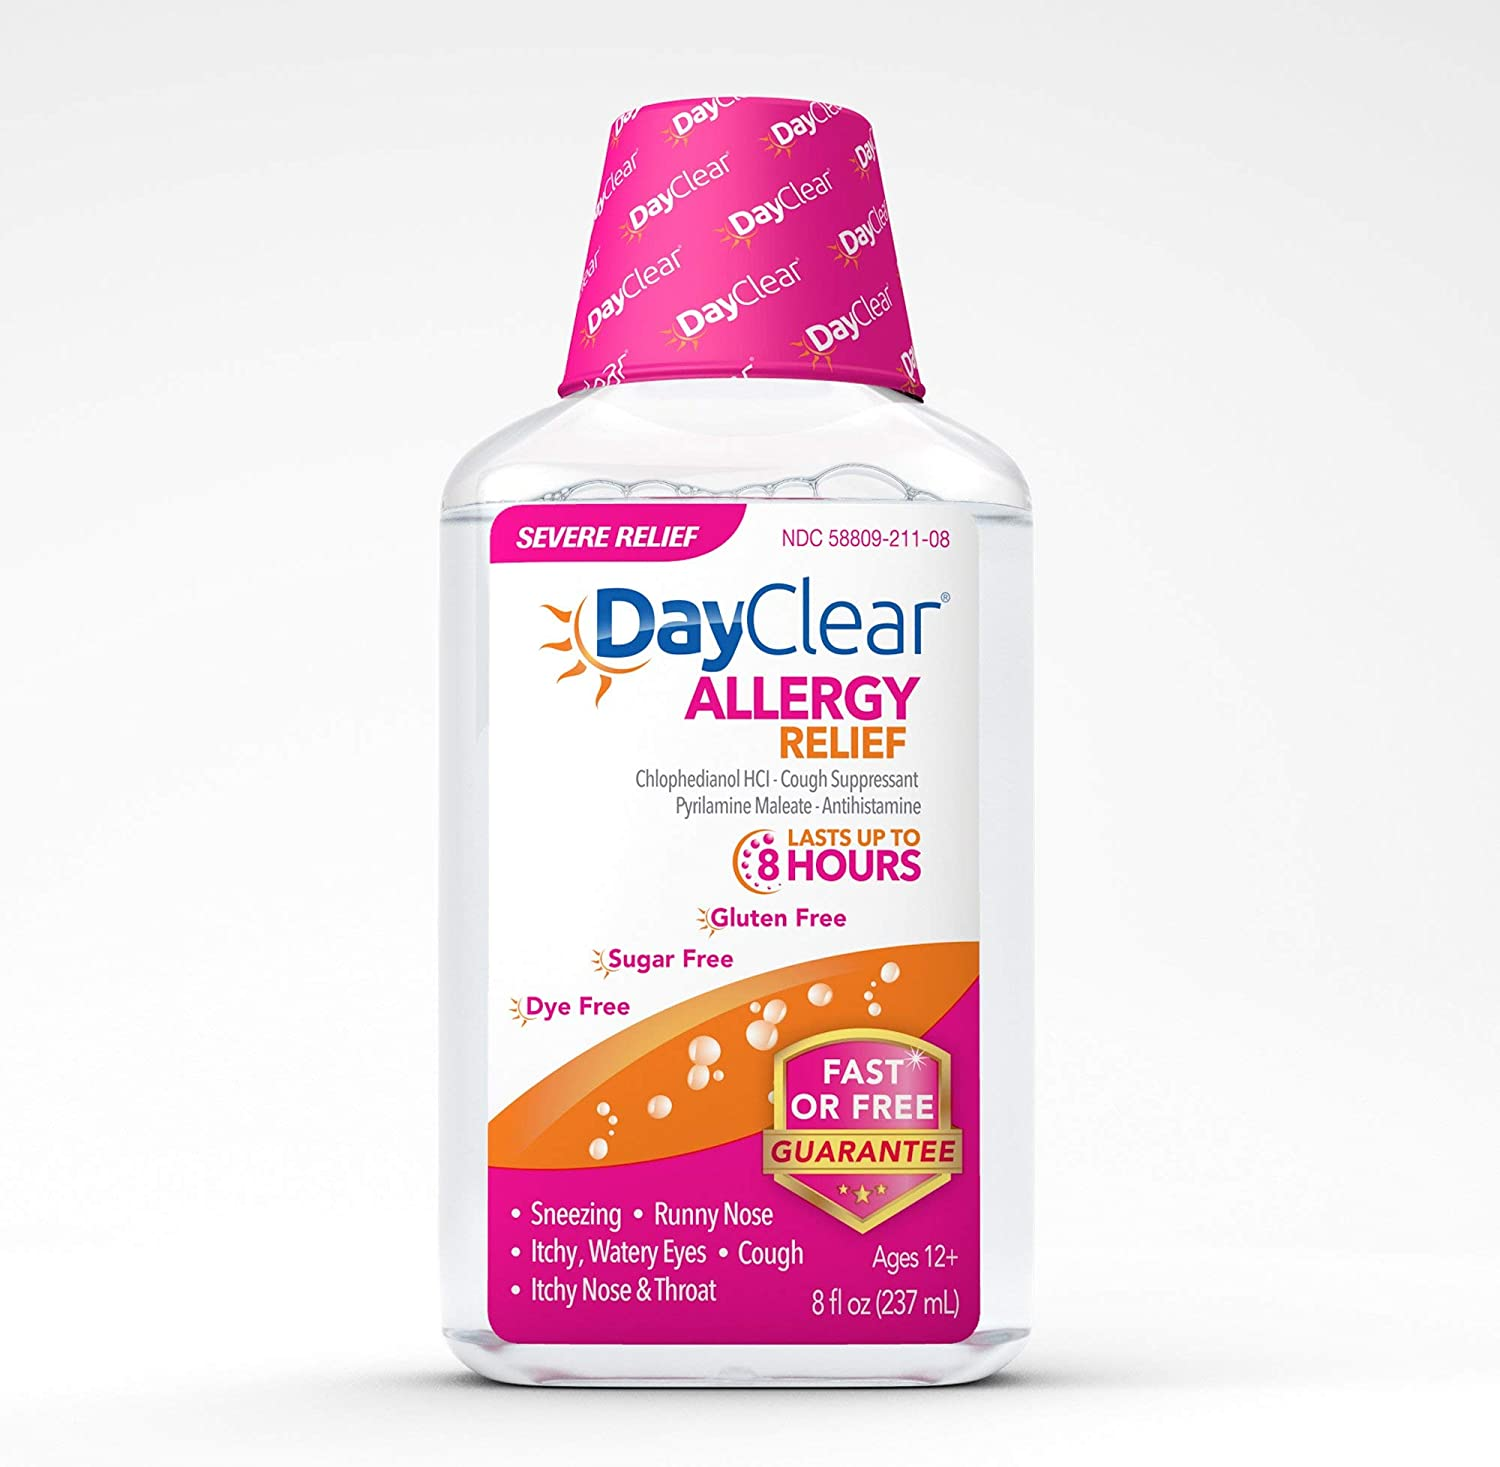 service DayClear Allergy Limited time sale Relief